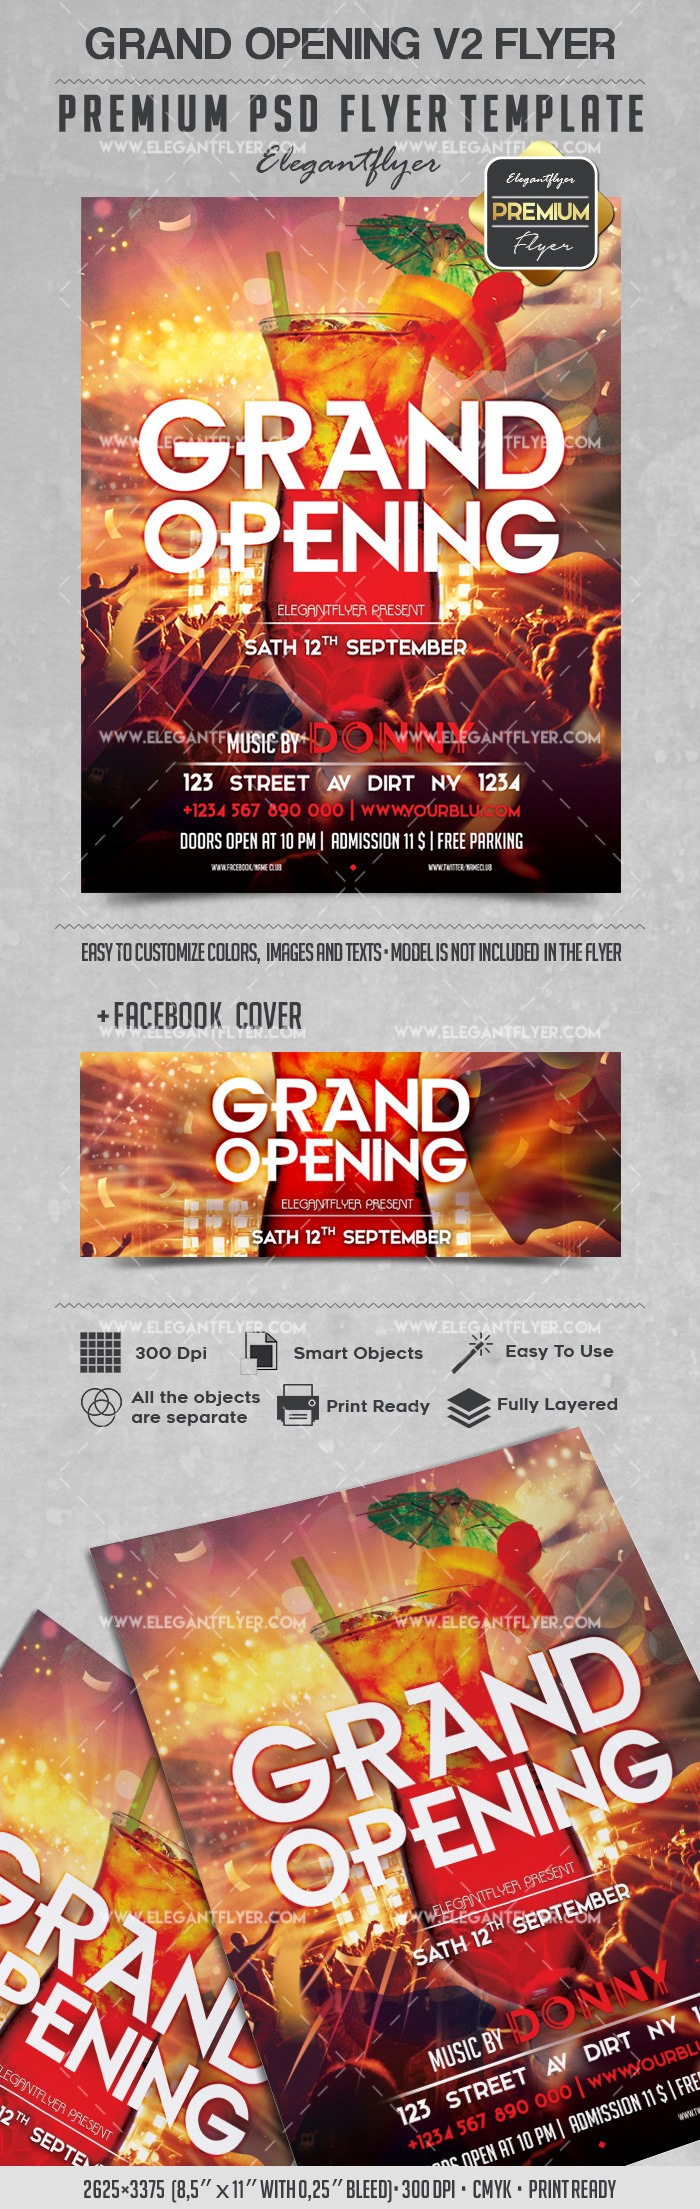 Grand Opening V2 – Flyer PSD Template + Facebook Cover